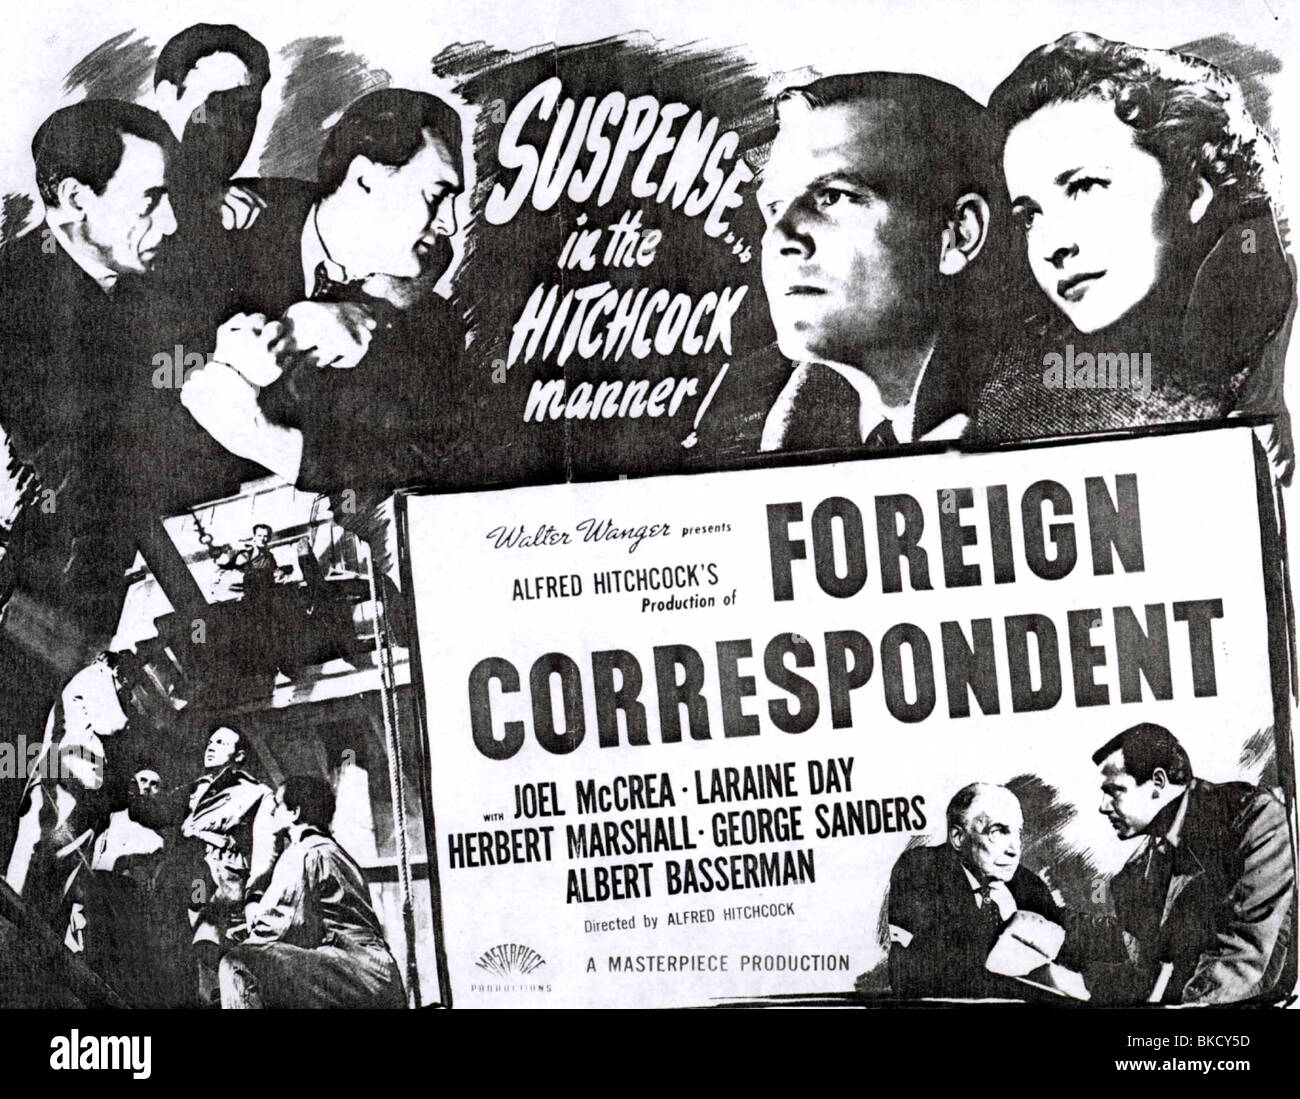 FOREIGN CORRESPONDENT (1940) POSTER FRCS 001PP - Stock Image